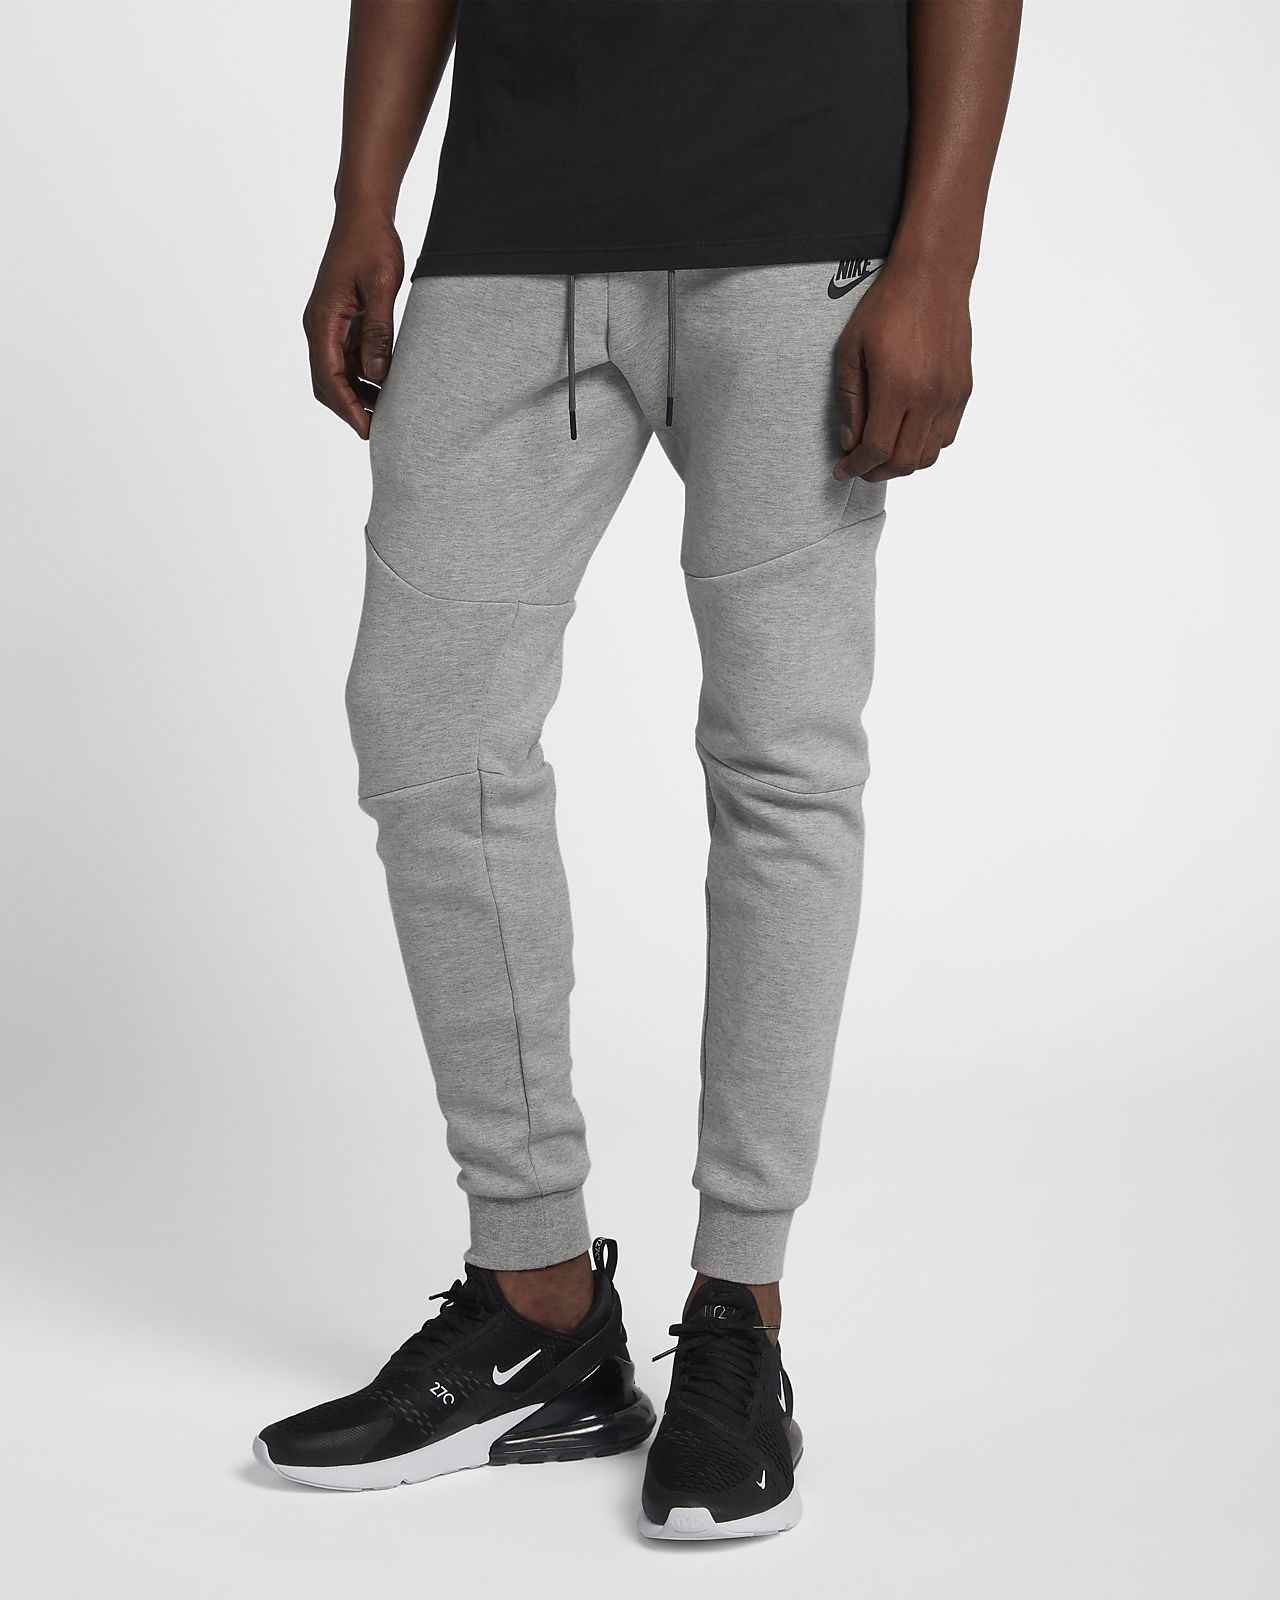 7e9cd0dbb323a1 Nike Sportswear Tech Fleece Men's Joggers. Nike.com